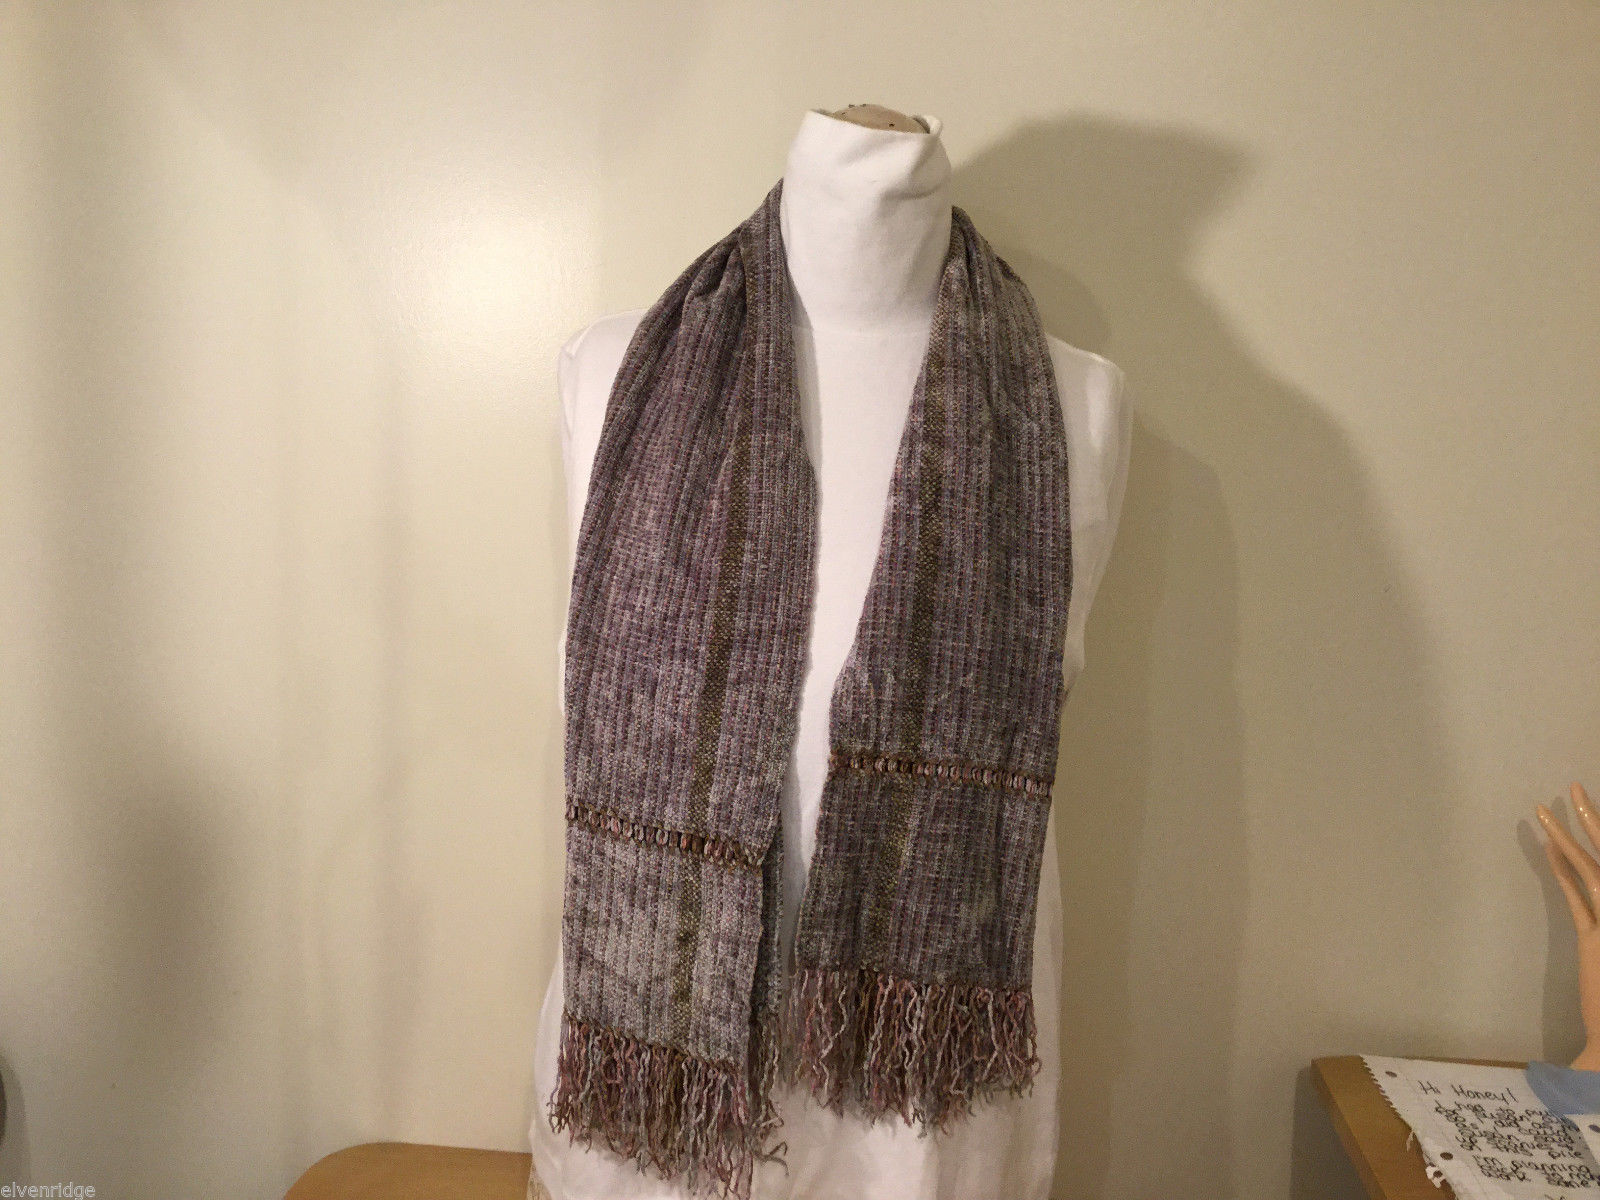 Winter Pastel Multi Colored Knitted Striped Scarf with Fringe